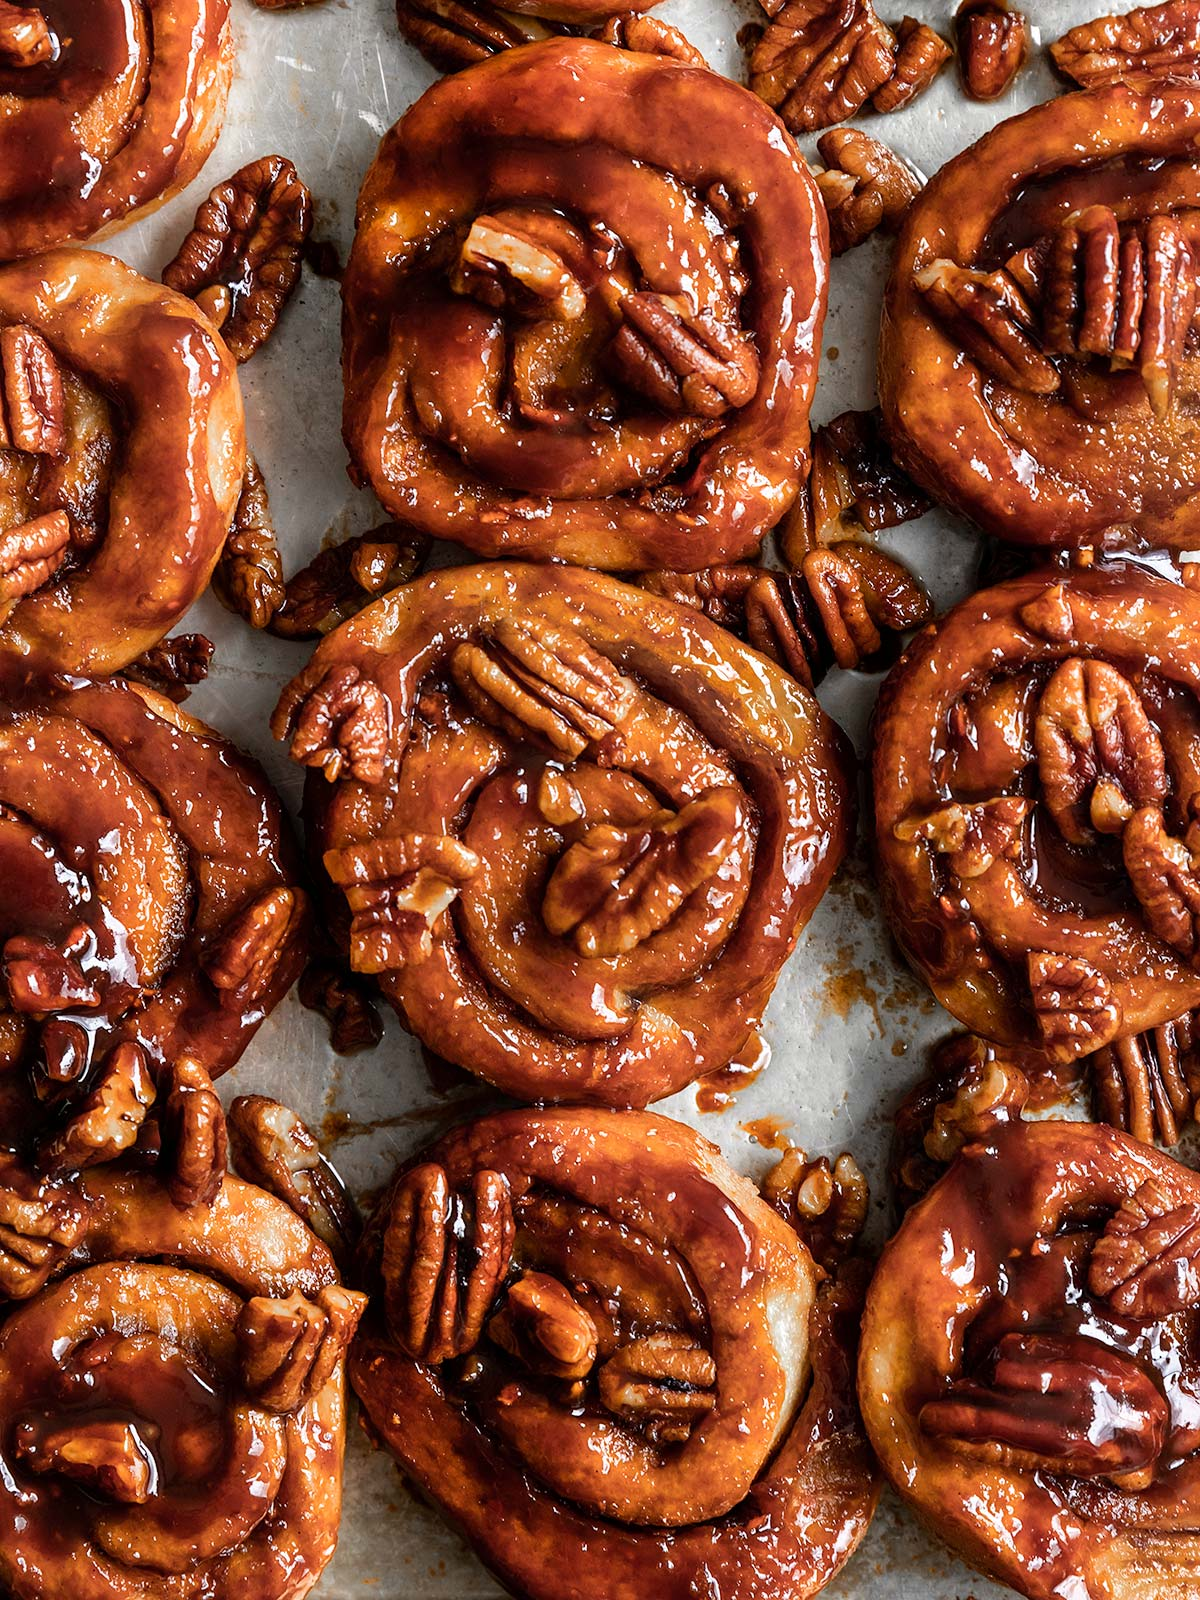 vegan sticky buns on a baking tray with pecans